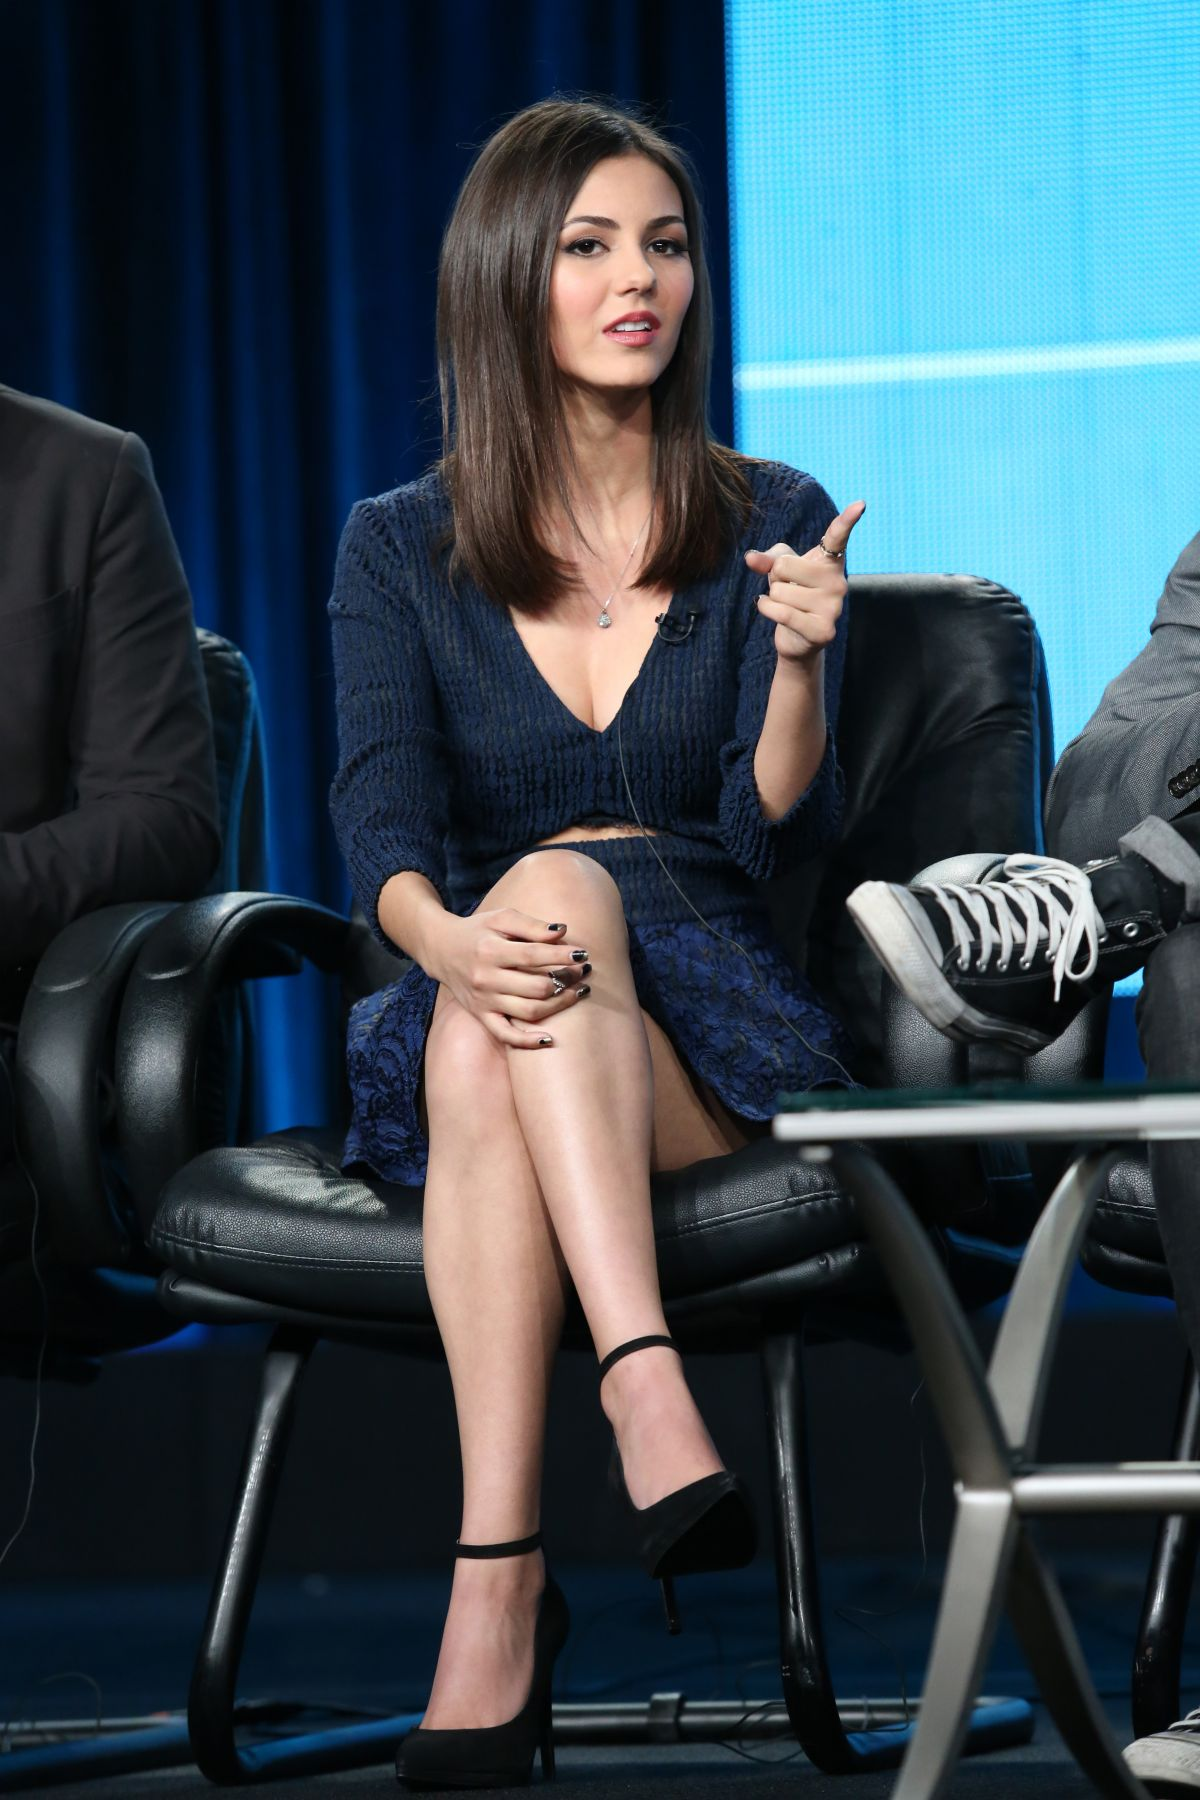 VICTORIA JUSTICE At Eye Candy Panel TCA Press Tour In Pasadena